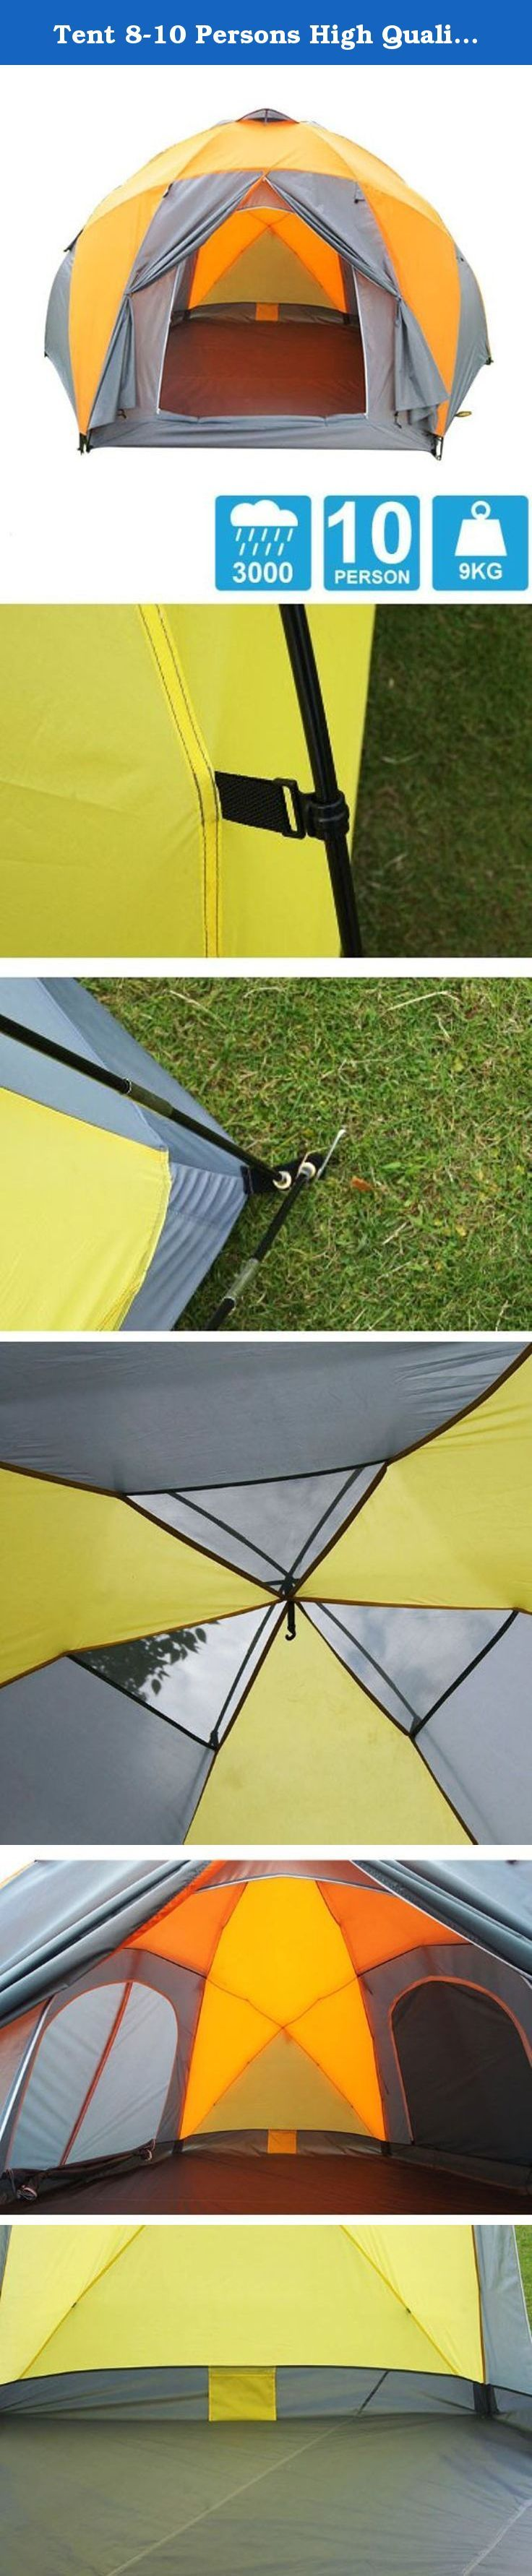 Tent 8-10 Persons High Quality Windproof Waterproof Outdoors 3000mm Hex Tent Durable Family Camping Gear Party Tent. 1. External tent material: 210T PU3000mm polyester 2. Backing material:210T PU3000mm polyester 3. Inner tent material: 190T breathable water repellent 4. Tent size: 330 x 380 x 195cm 5. pole: 8.5mm Fiberglass 6. Weight: 9kg 7. Packing size: 100cm x 14cm x 14cm 8. Fabric:polyester .